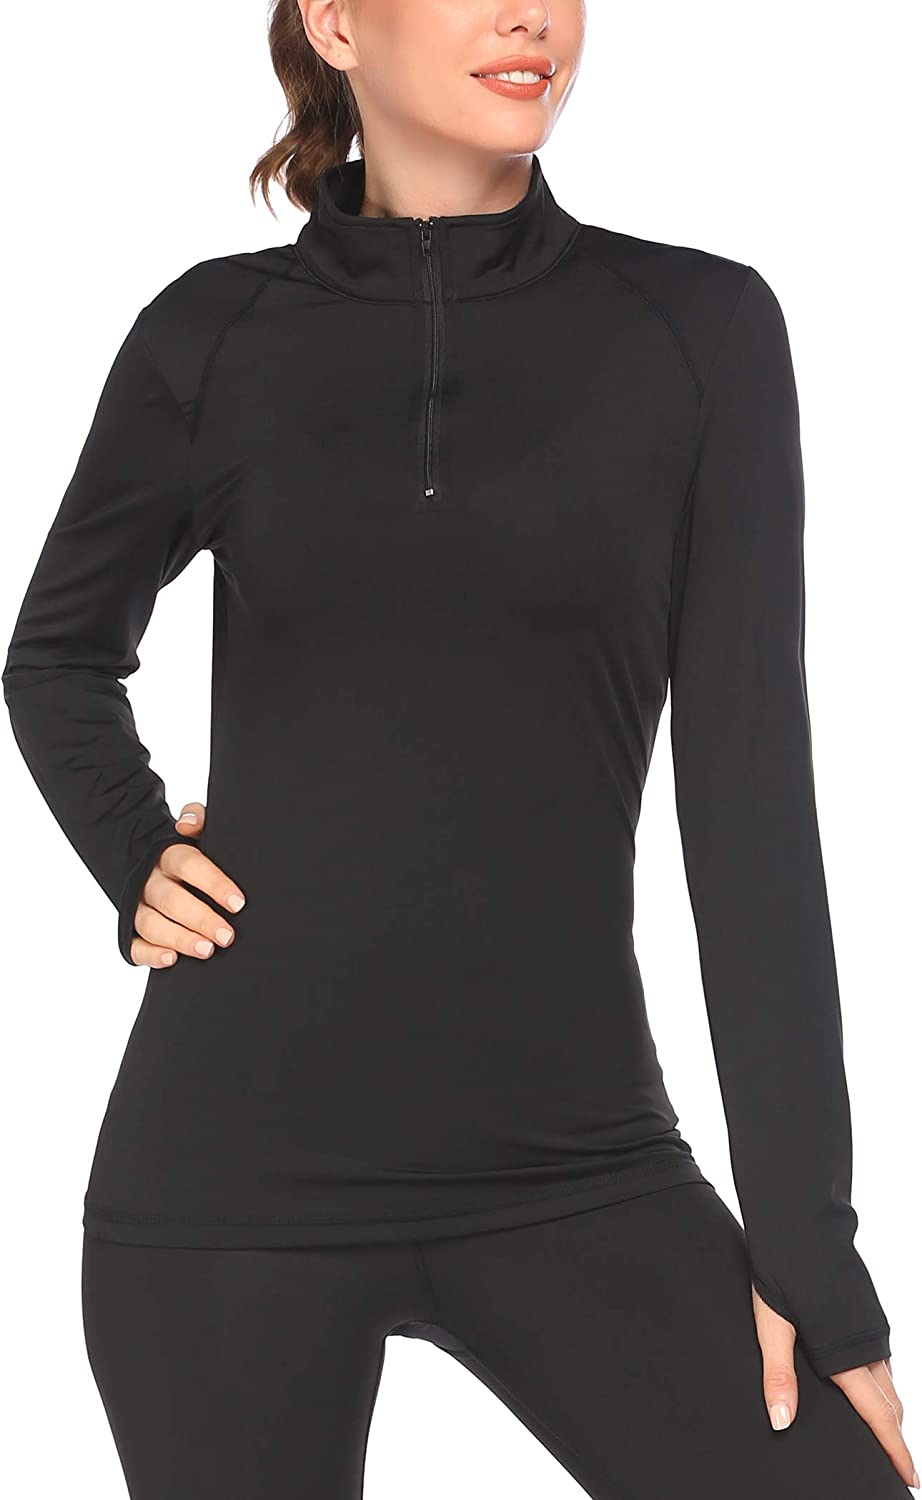 Pinspark Women's Los Angeles Mall Long Sleeve Stretchy Thumb Workout sale Hole Sports